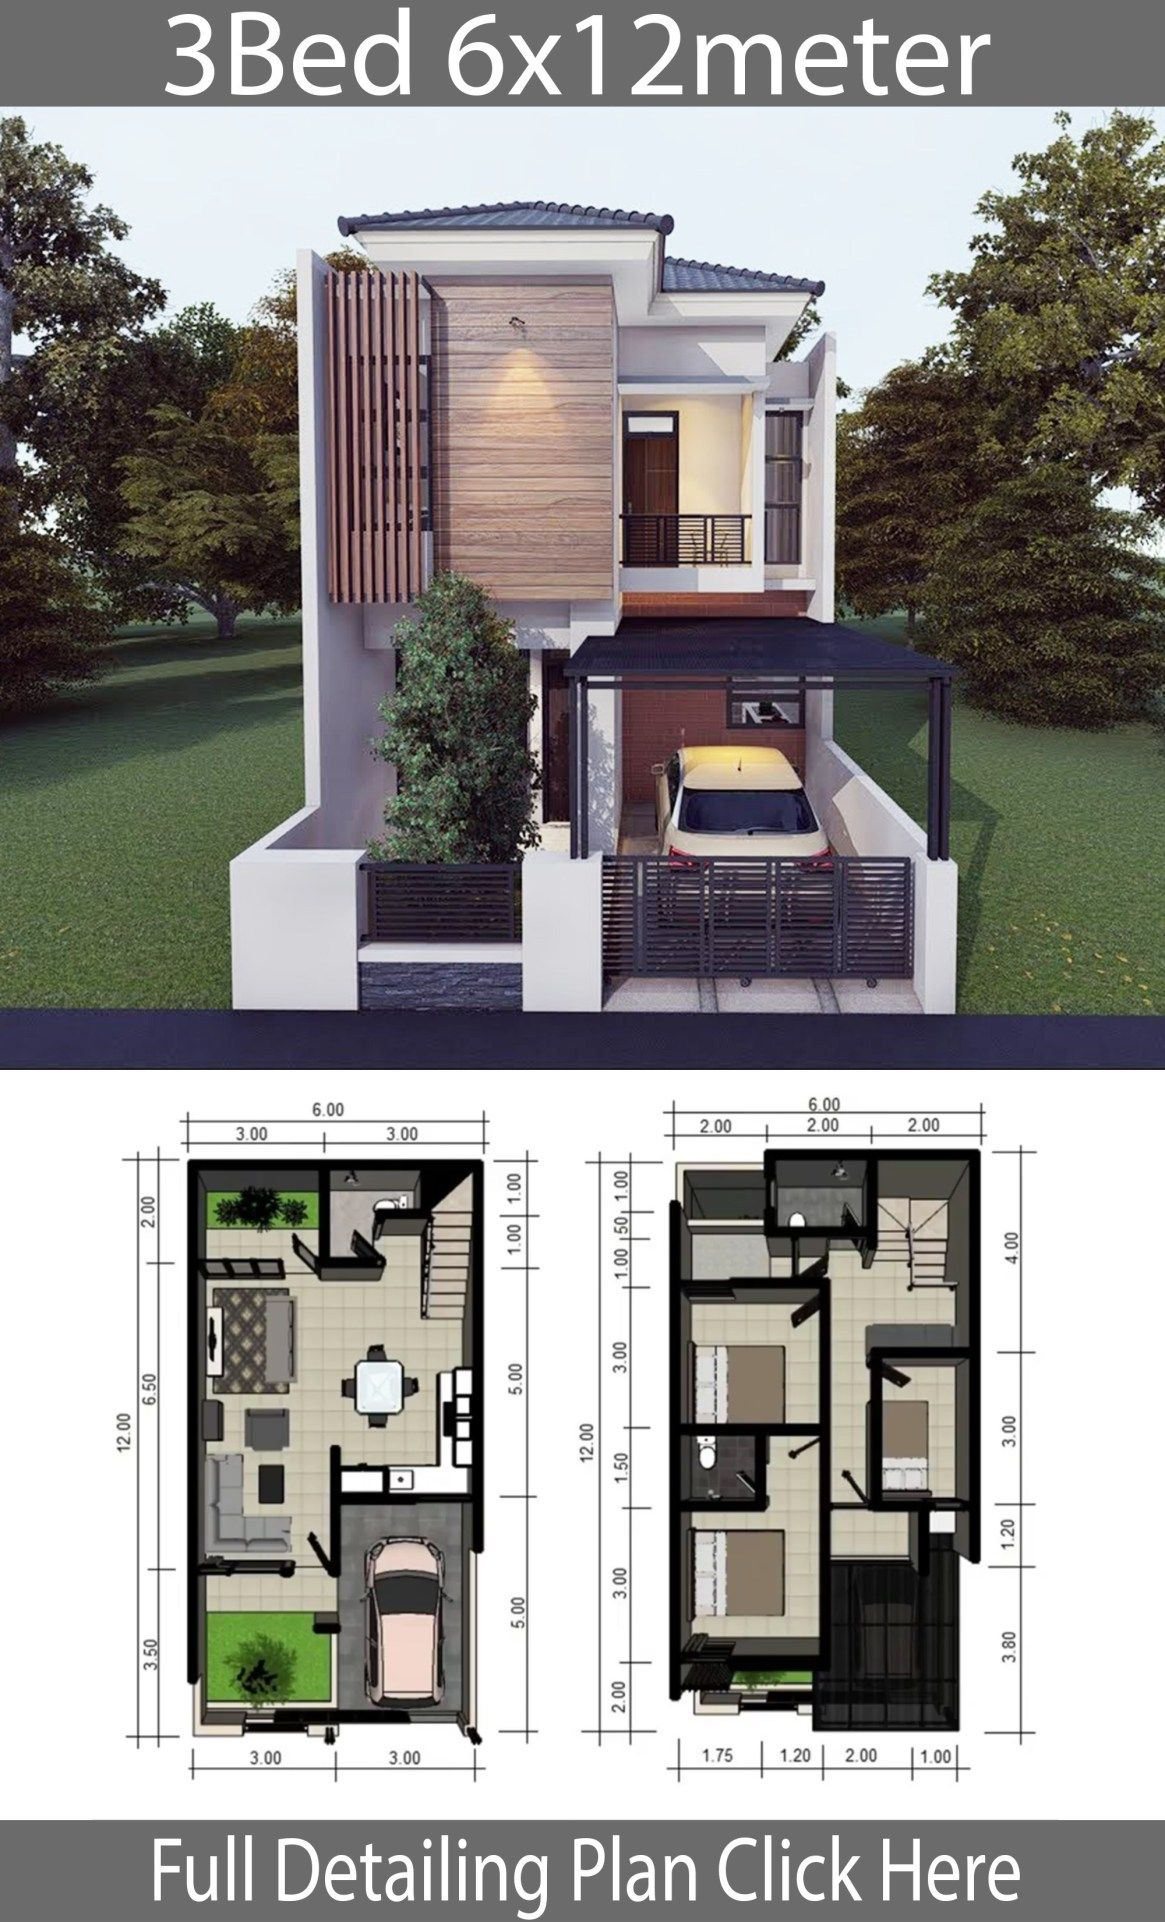 Home Design Plan 6x12m With 3 Bedrooms Home Design With Plansearch Architectural House Plans Minimalist House Design Small House Design